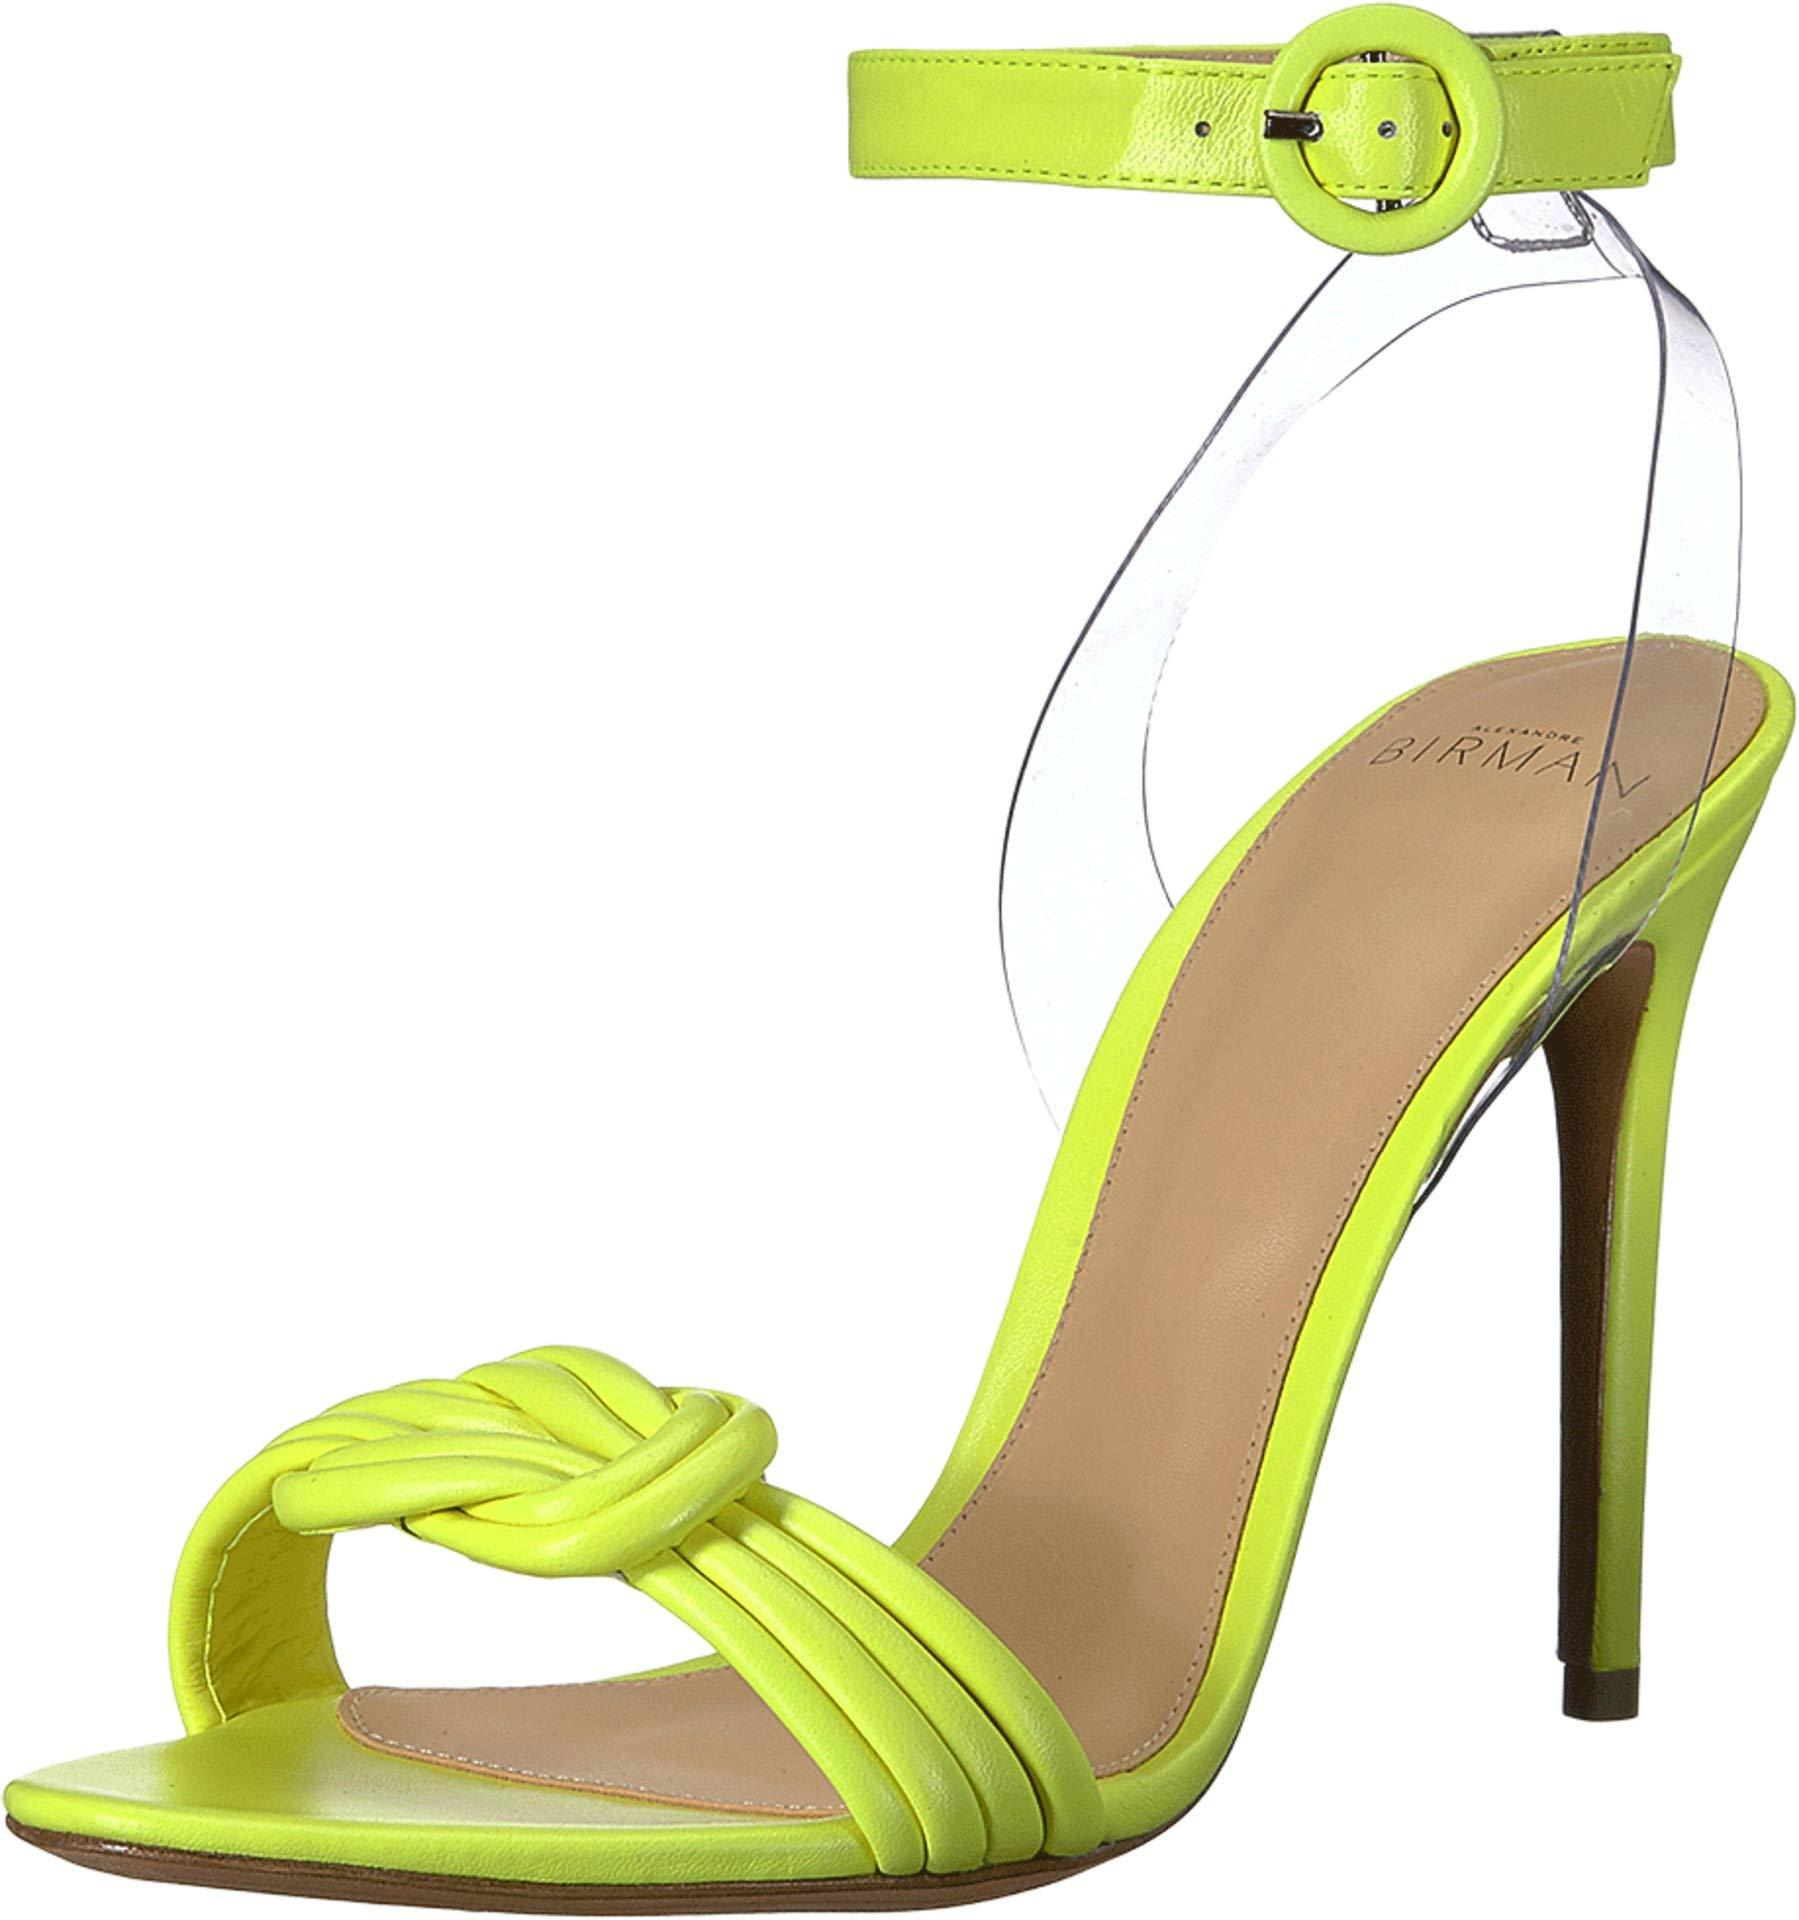 3e8b22886 Alexandre Birman - Yellow 100 Vicky Vinyl Leather - Lyst. View fullscreen